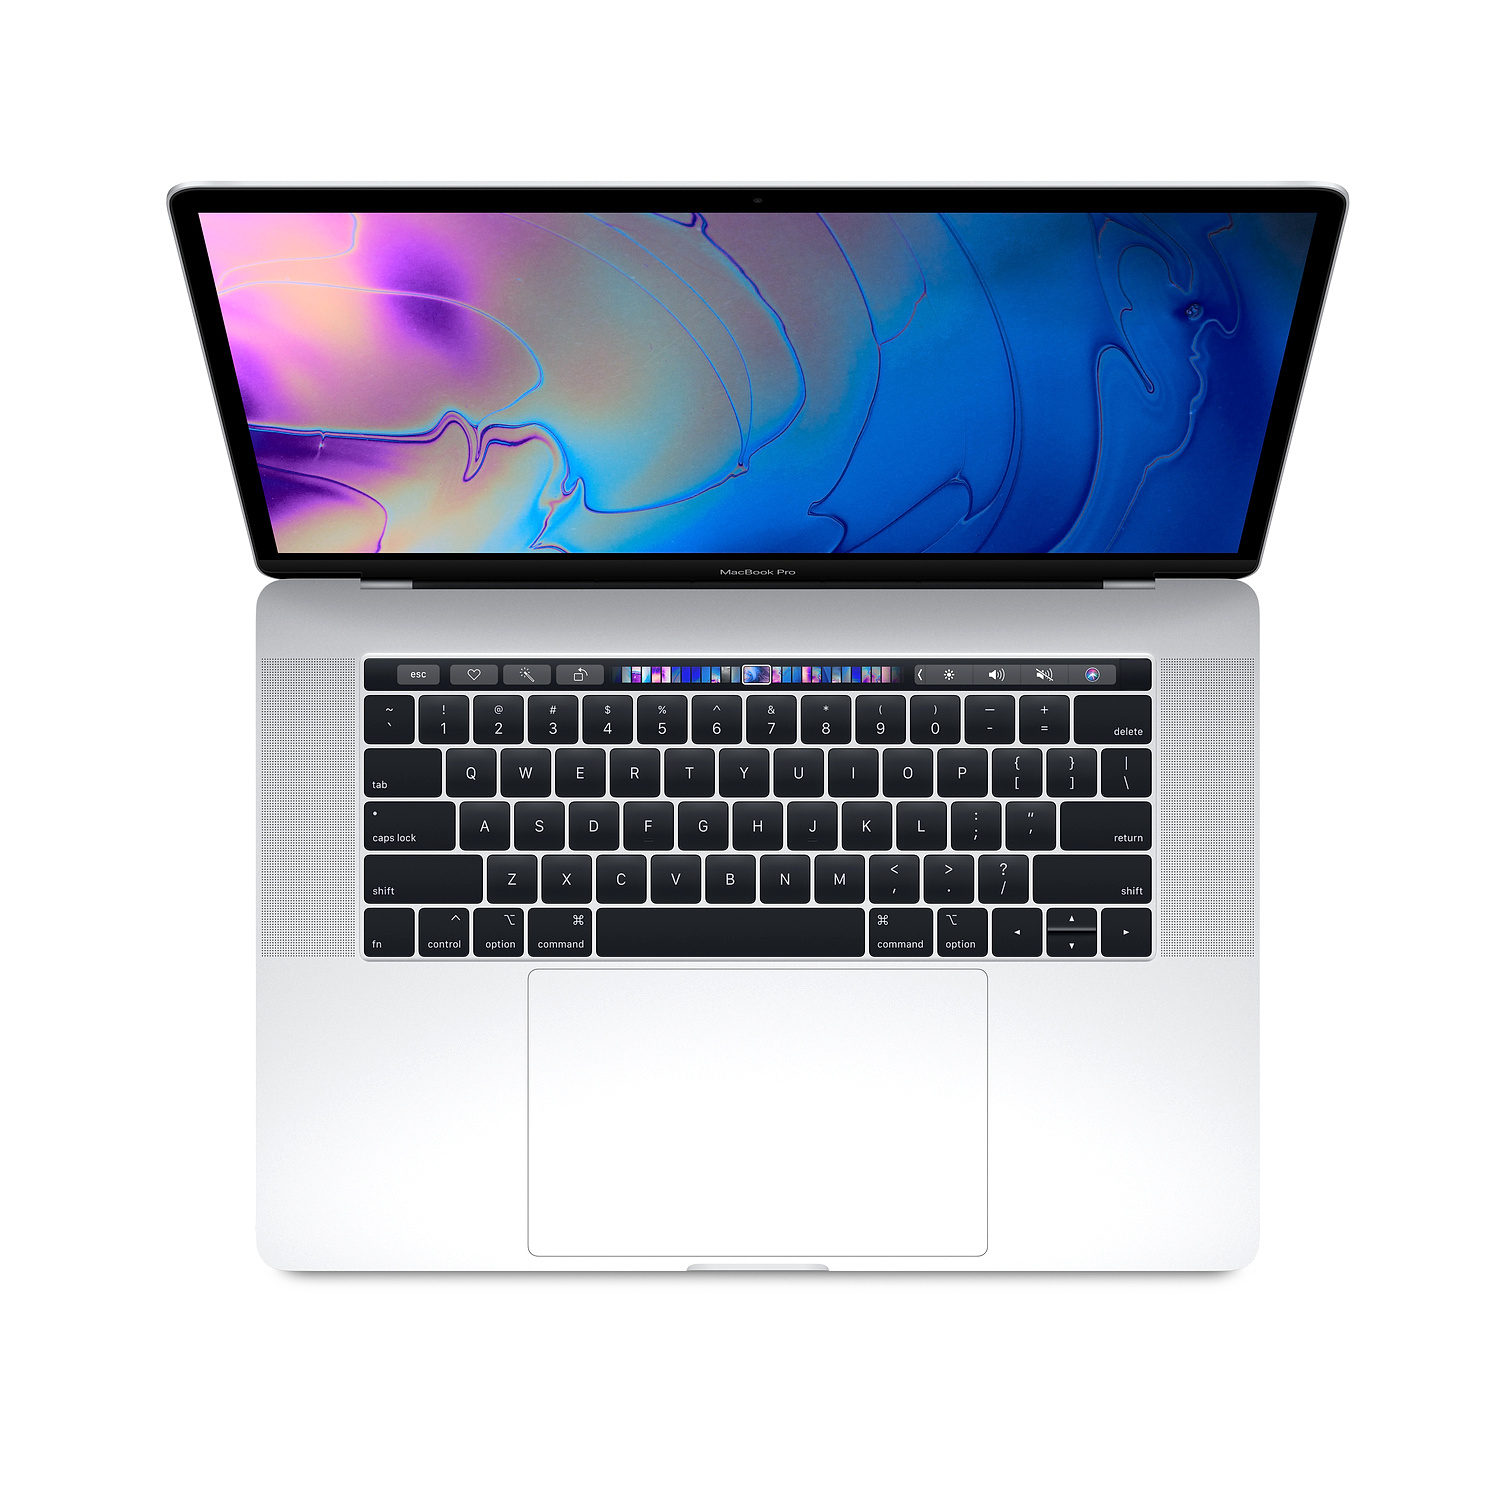 Apple MacBook Pro 15-inch Touch Bar 6-core i7 2.6GHz 512GB Silver (MR972N/A)